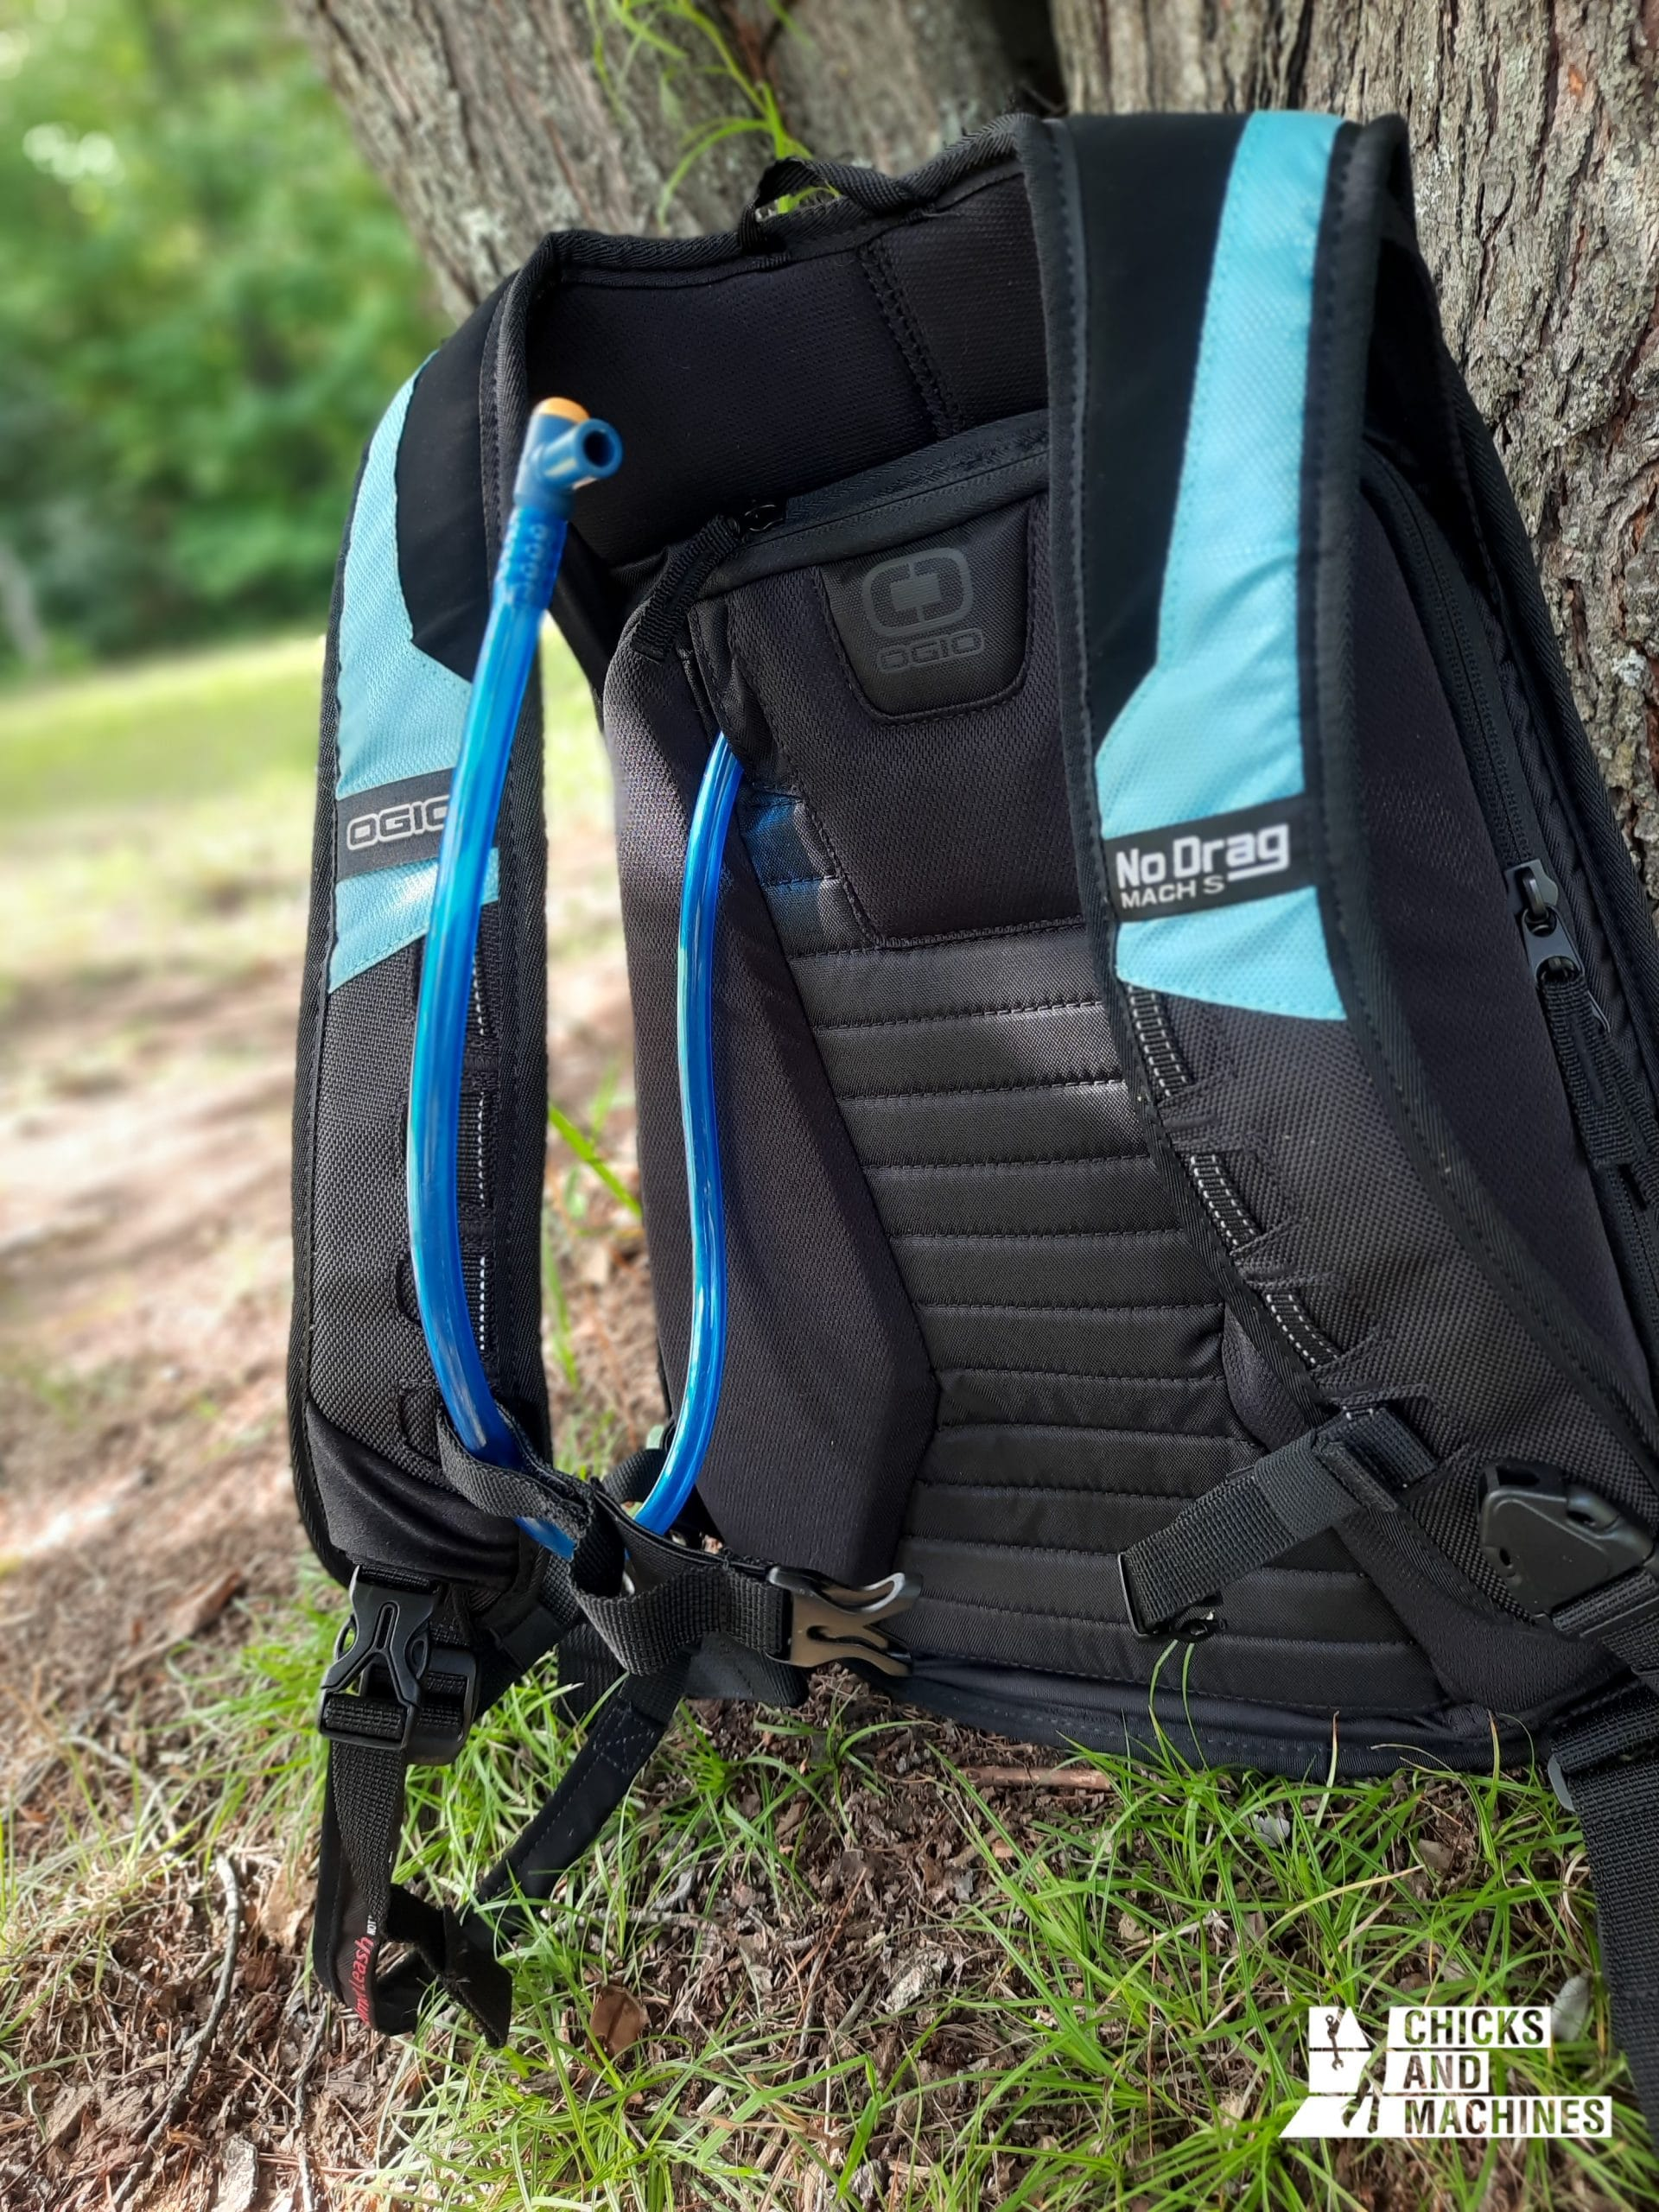 Well-padded back with room for a hydration pouch